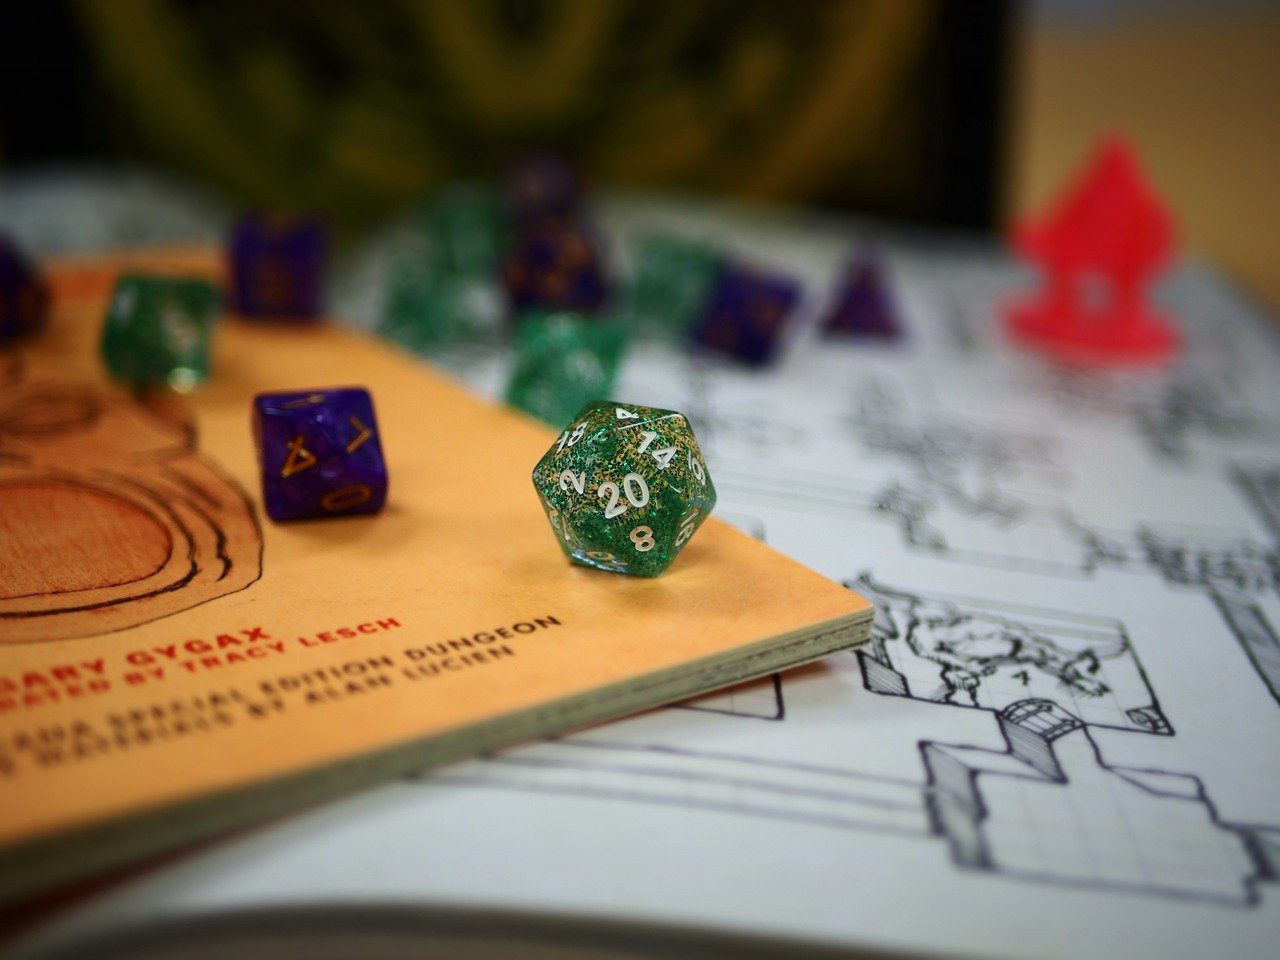 dungeons-and-dragons-4413056_1280